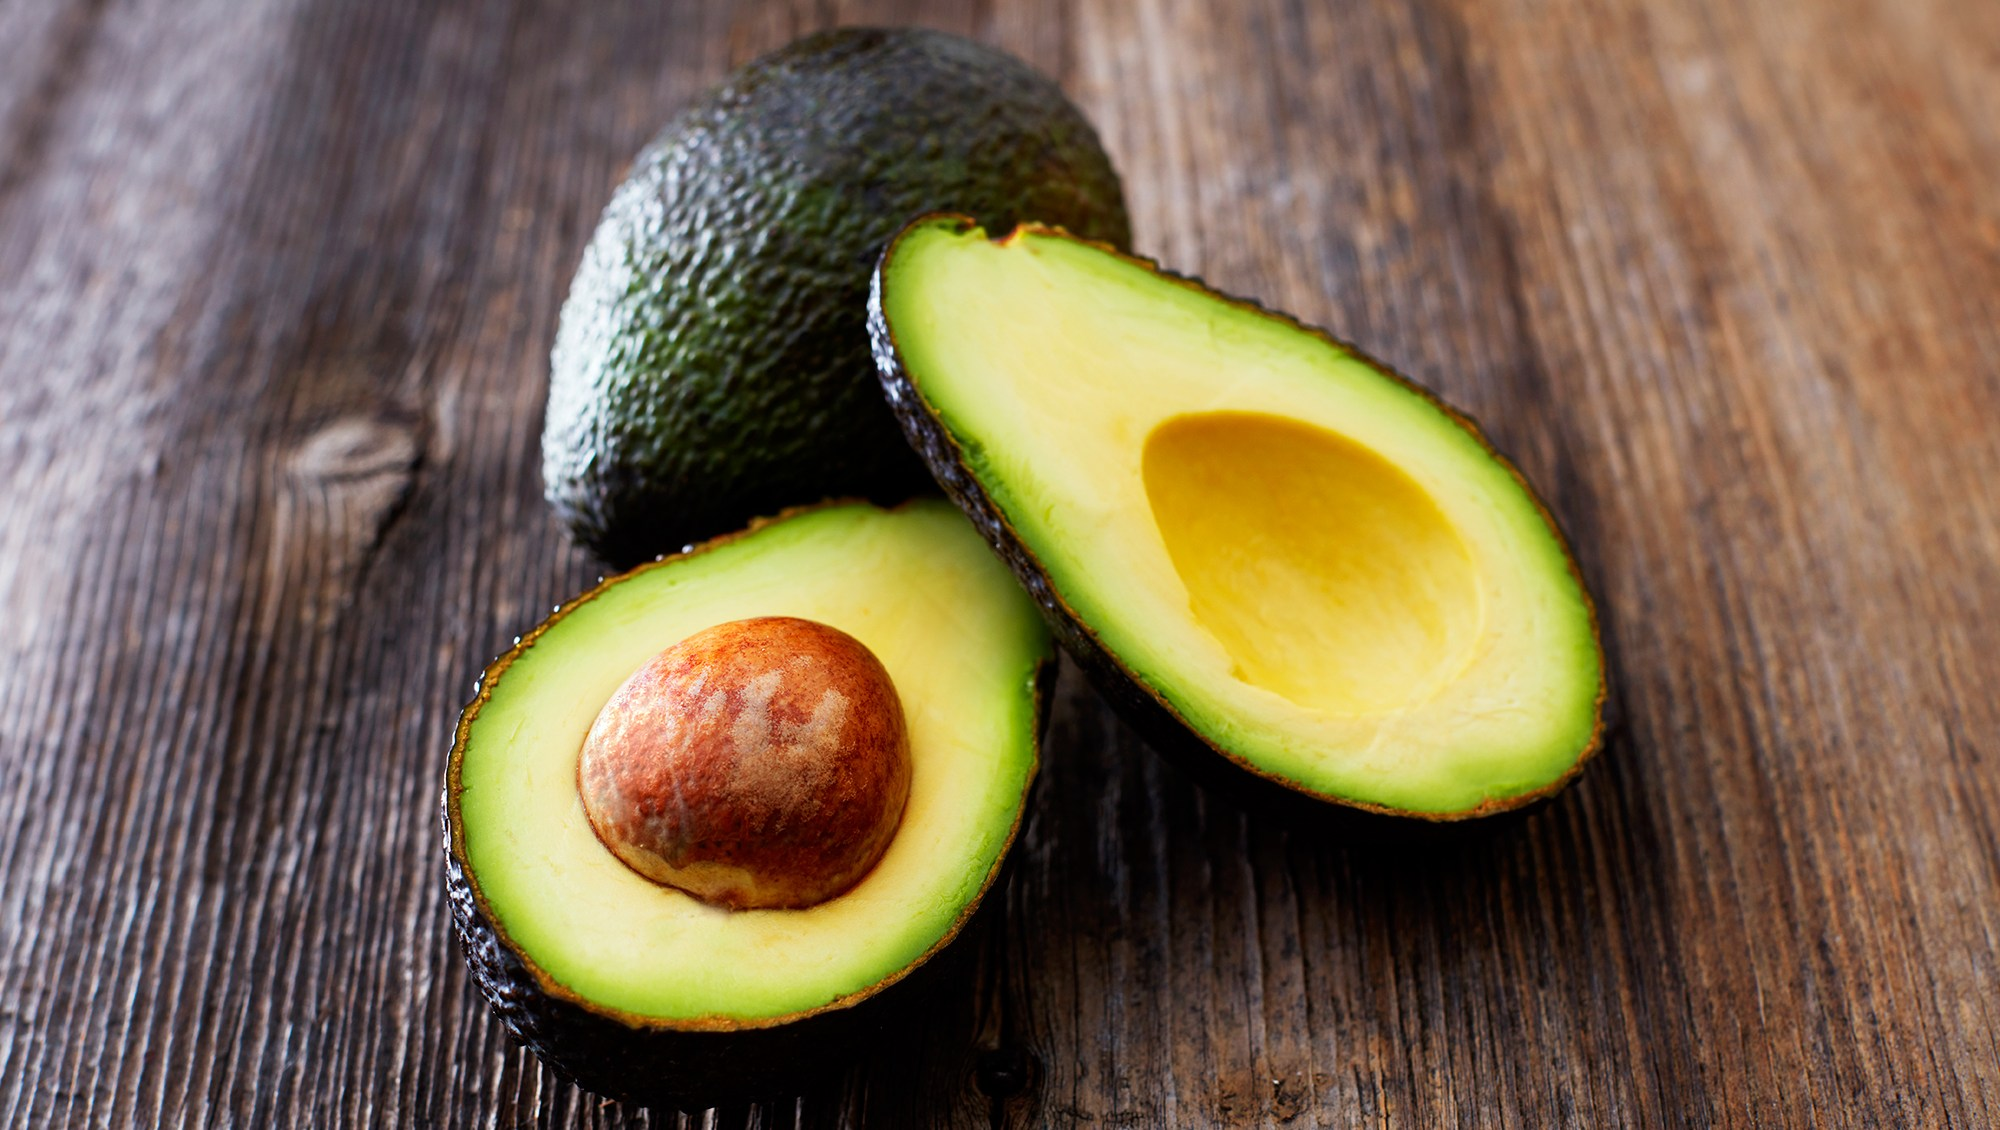 Avocados Are Being Recalled But Millennials Vow to Eat Them Anyway: 'If I Die, I Die'